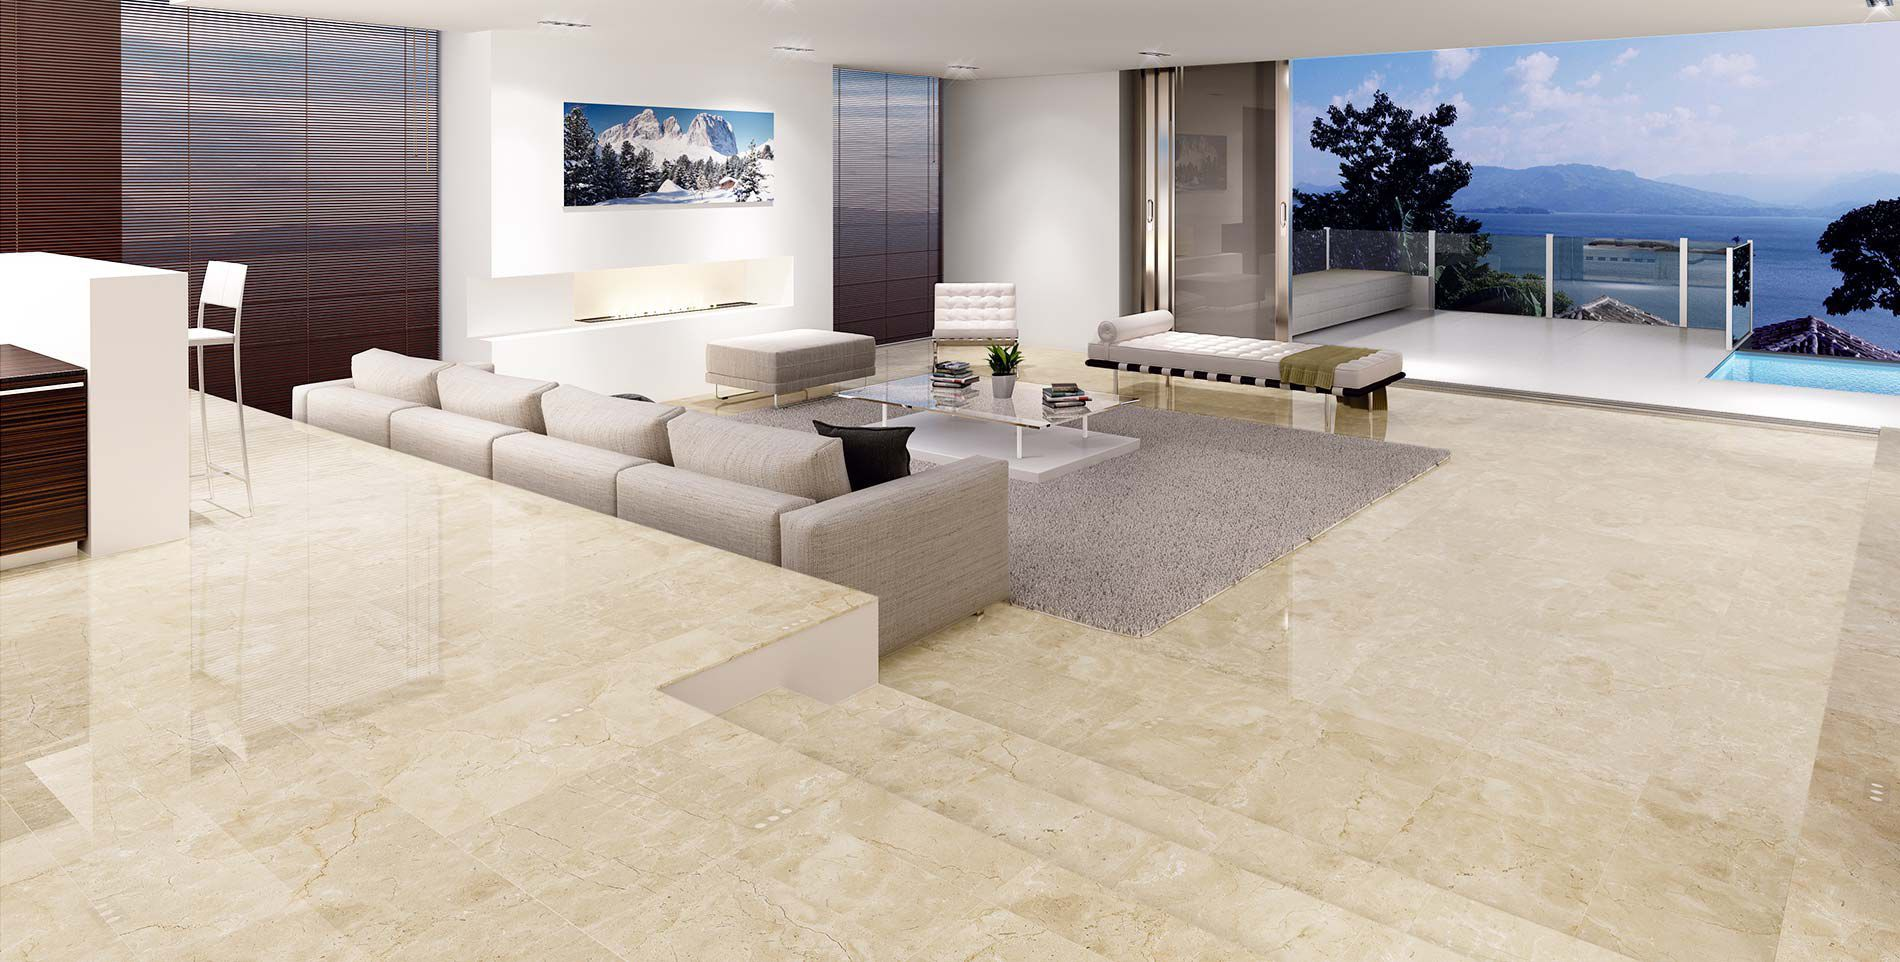 Image result for crema marfilMARBLE FLOORING